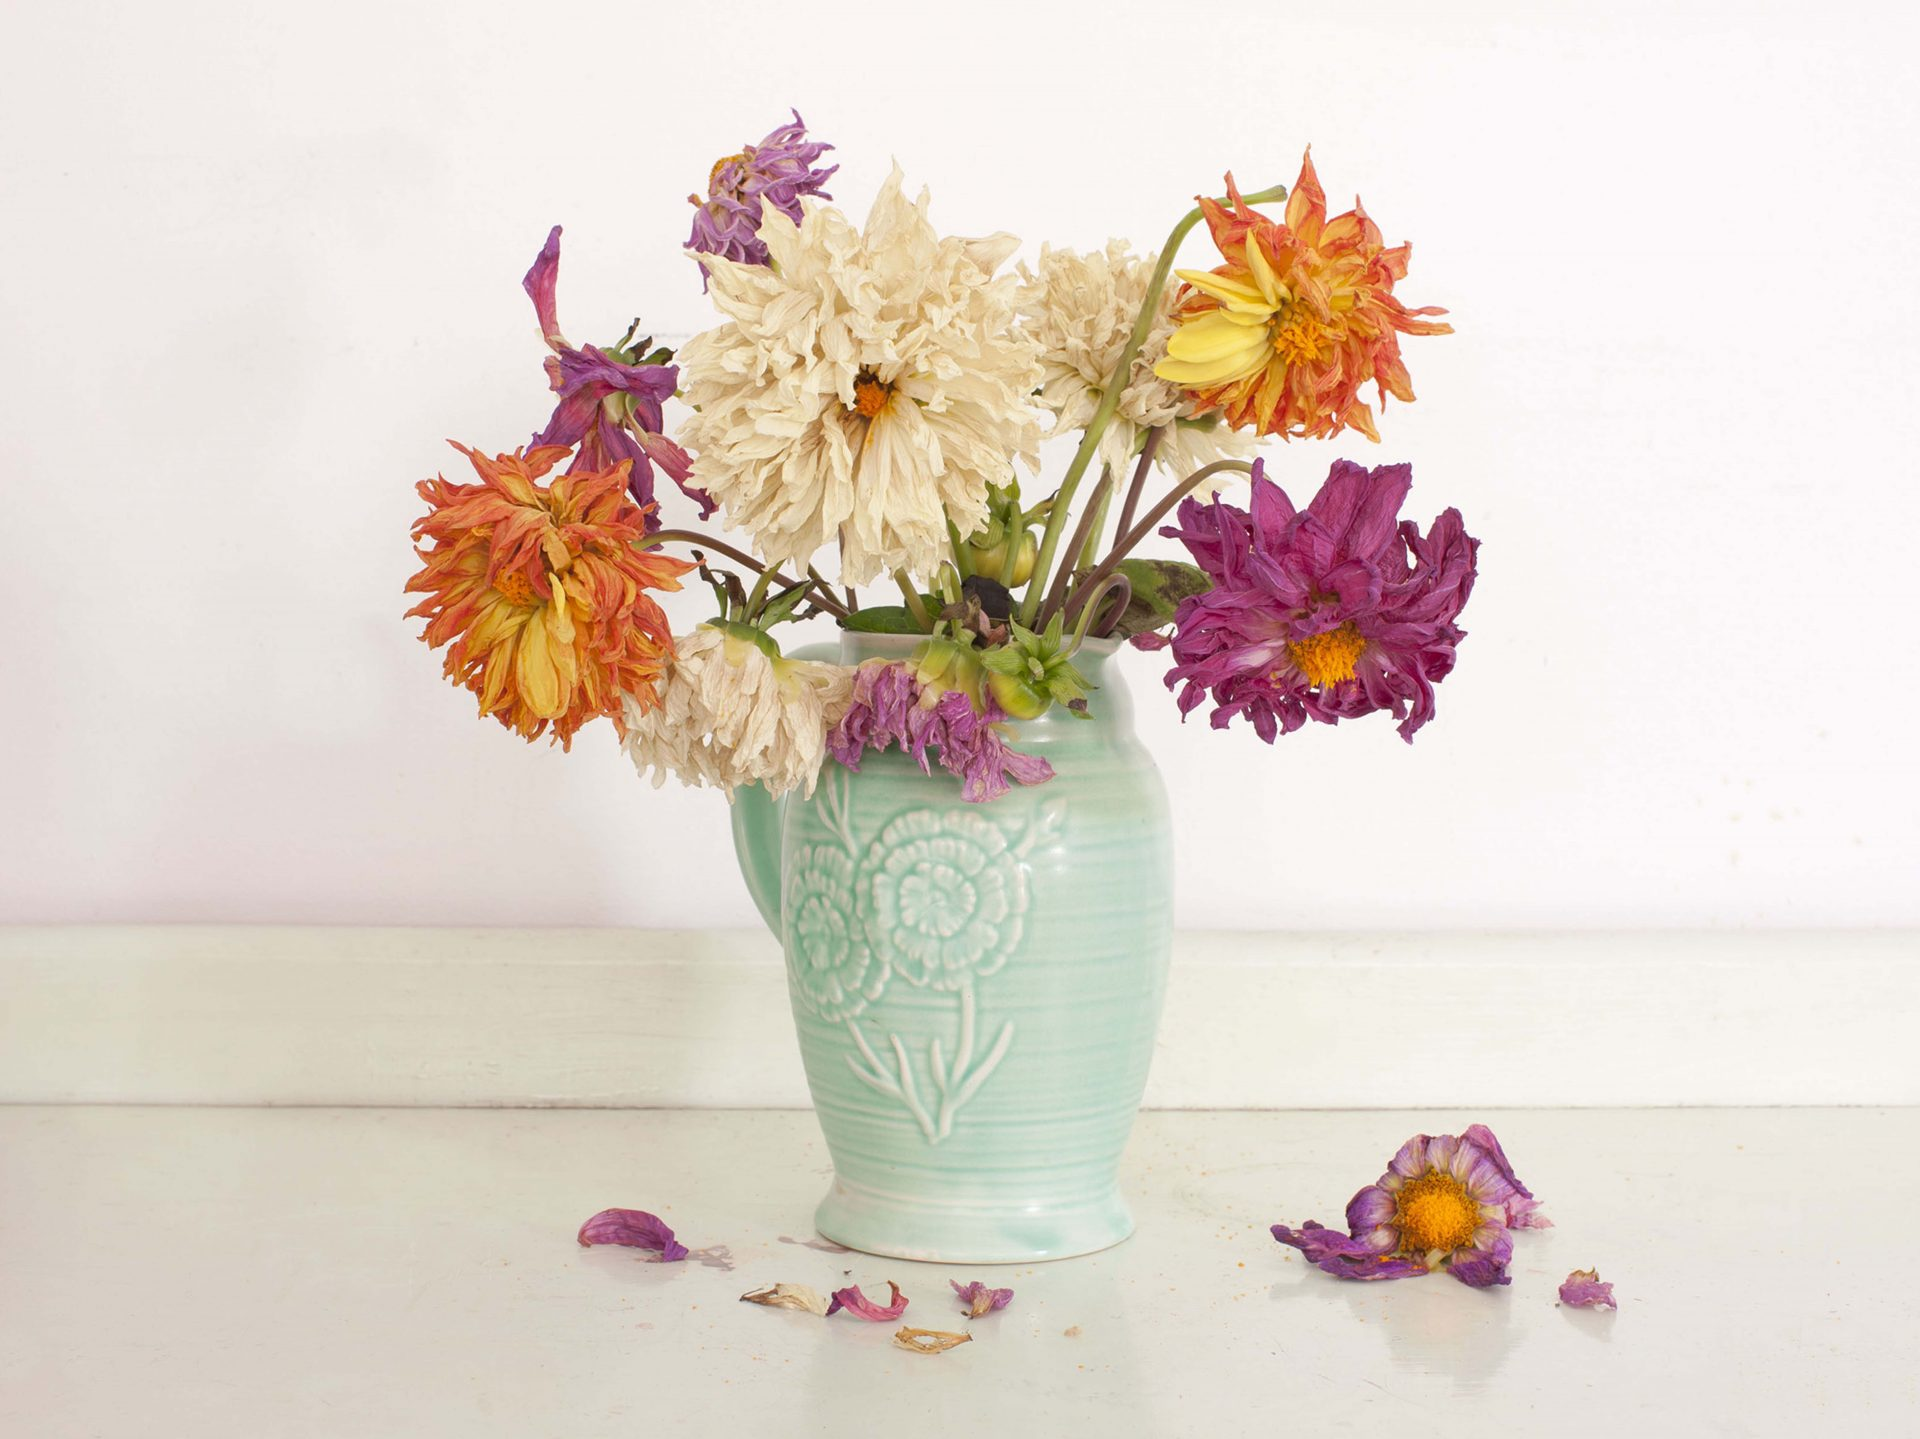 Shaw & Shaw photography – Vase of Dahlias – dying flowers wilting  – Shaw and Shaw Advertising photographers photographer photography